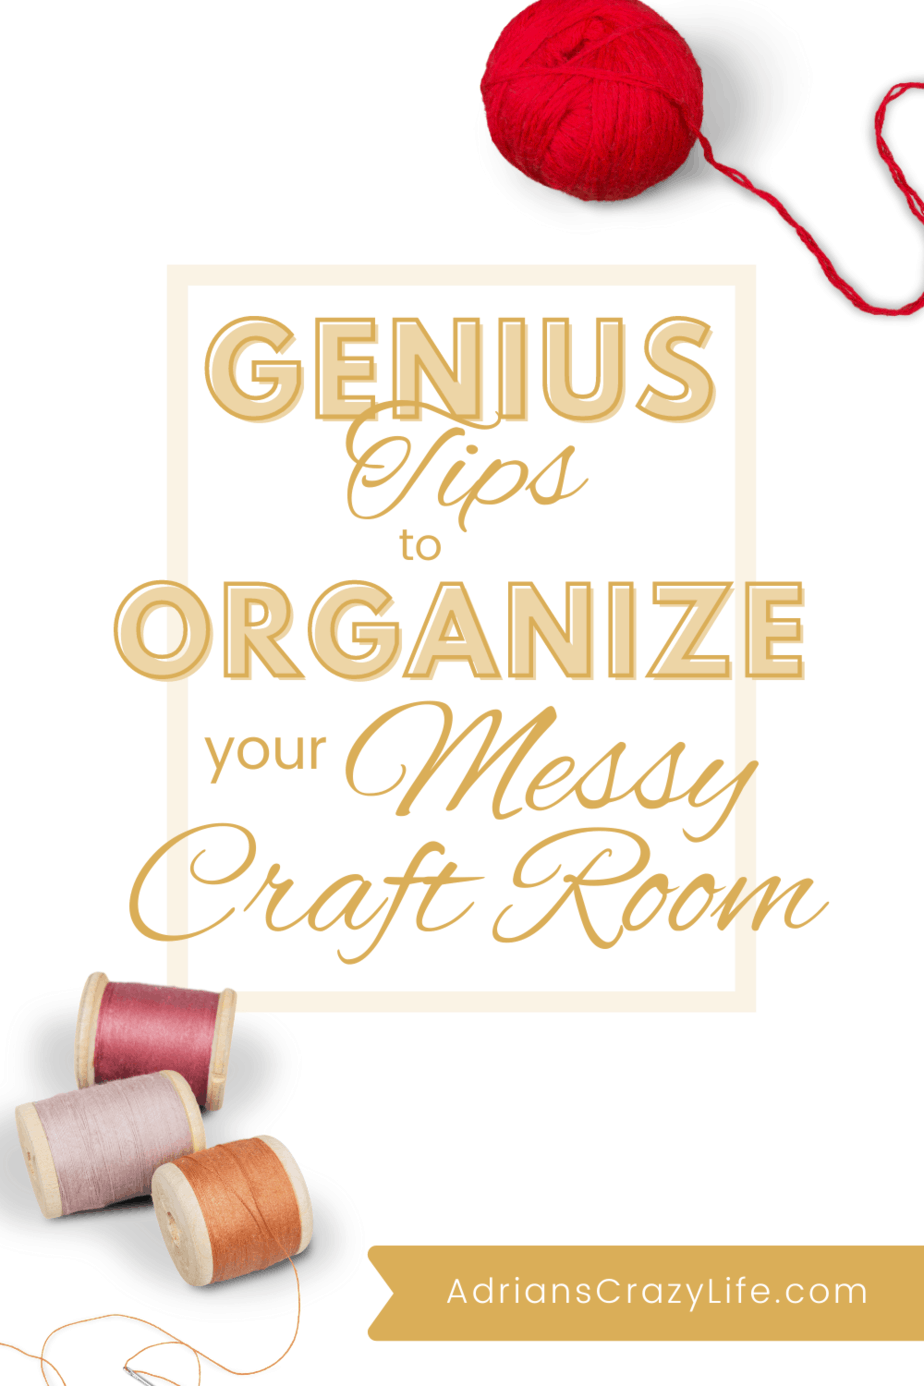 Organized Your Messy Craft Room